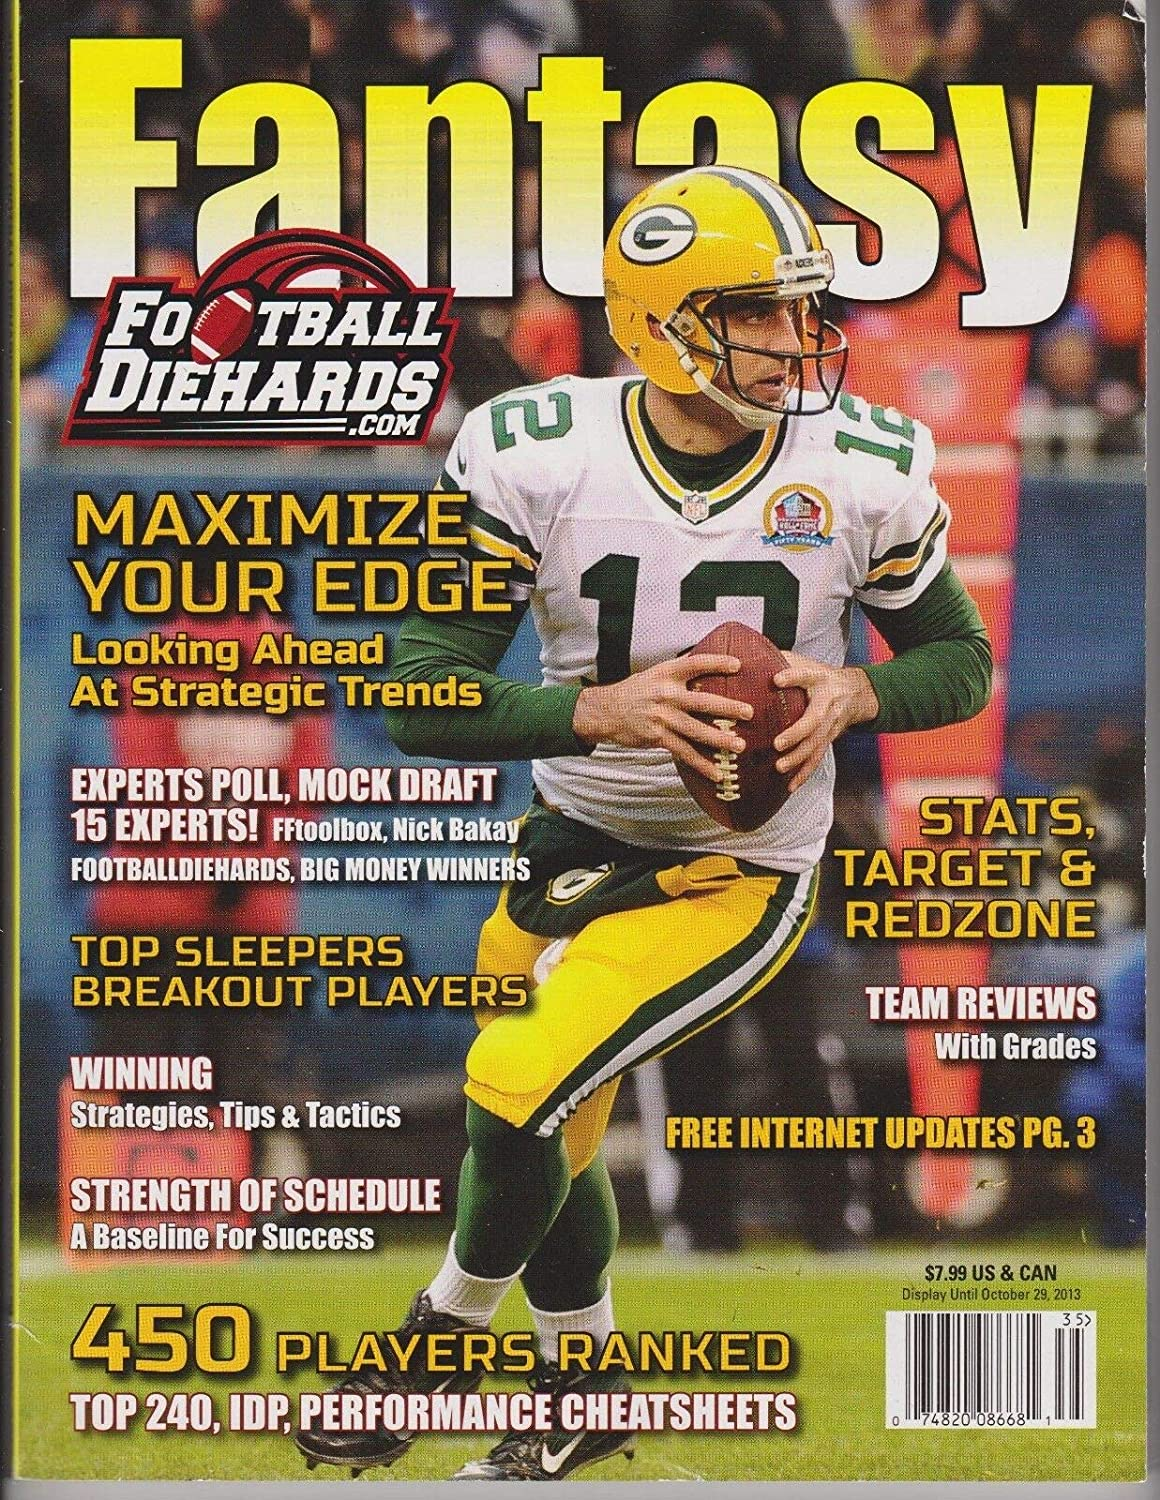 Amazon Com Fantasy Football Diehards Magazine 2013 450 Players Ranked Top 240 Cheatsheets Everything Else Fftoolbox.com is a moderately popular website with approximately 123k visitors monthly, according to alexa moreover, fftoolbox has a decent level of socialization: amazon com